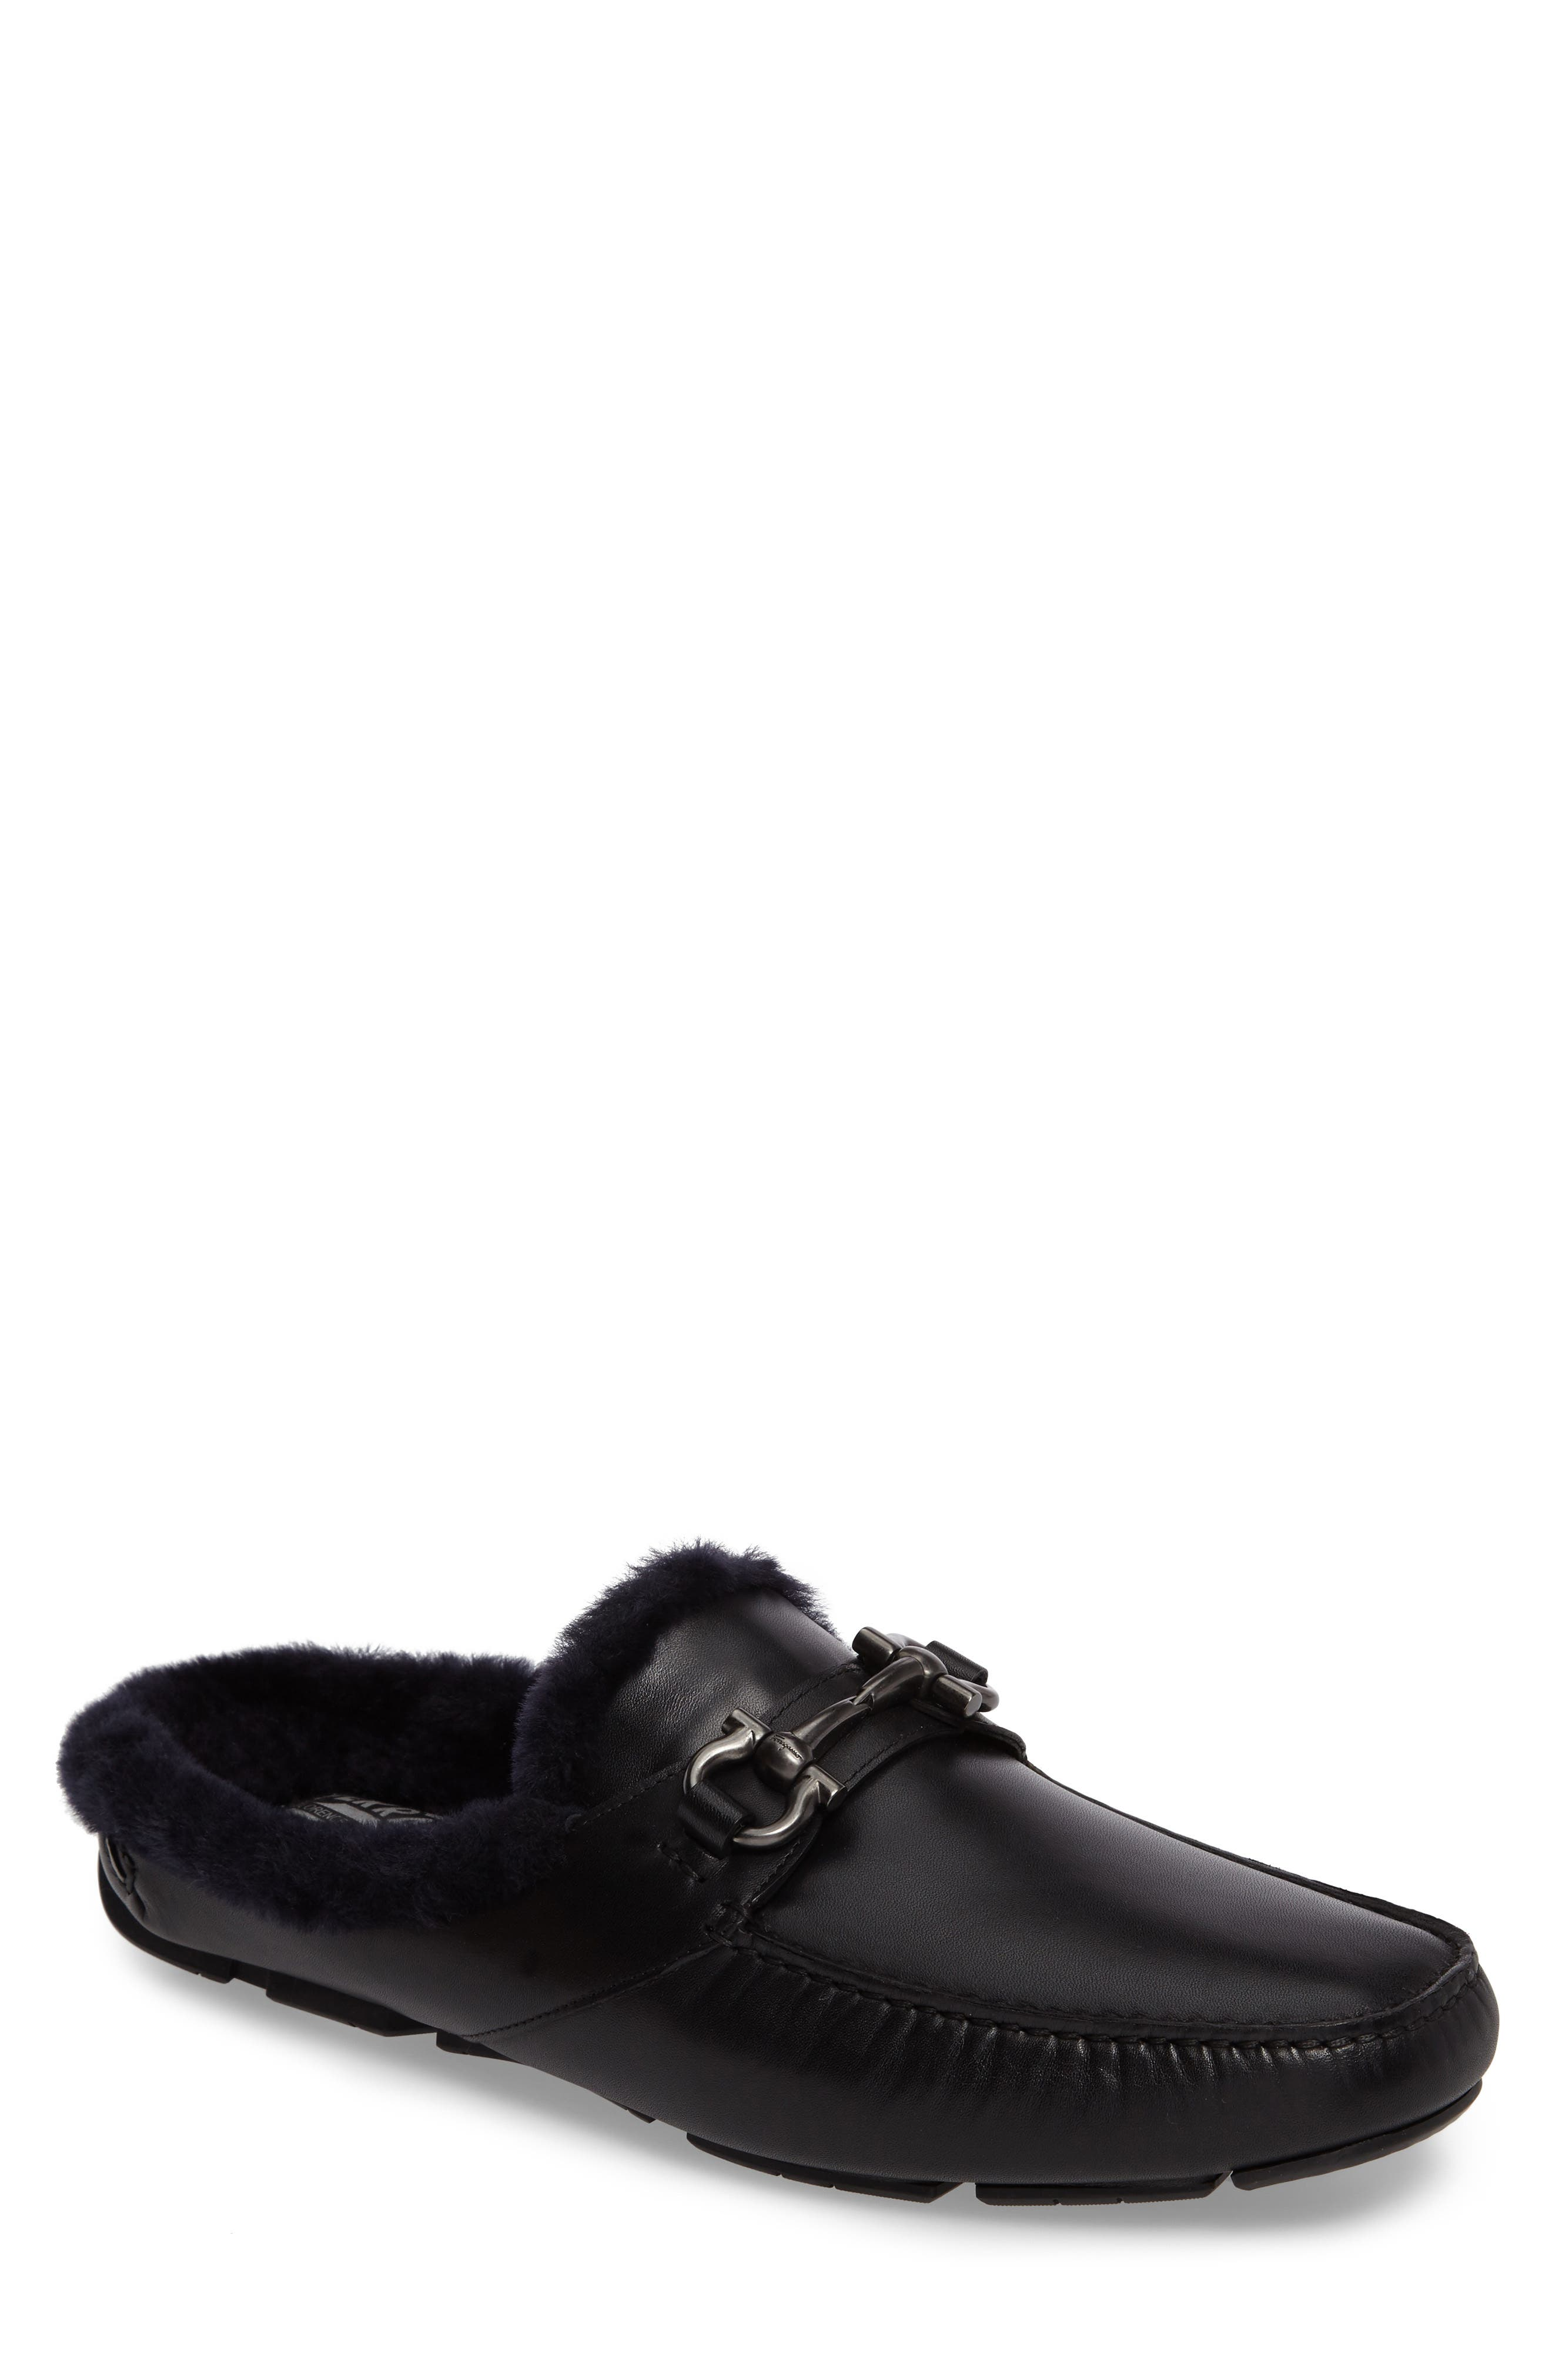 Main Image - Salvatore Ferragamo Driving Loafer with Genuine Shearling (Men)